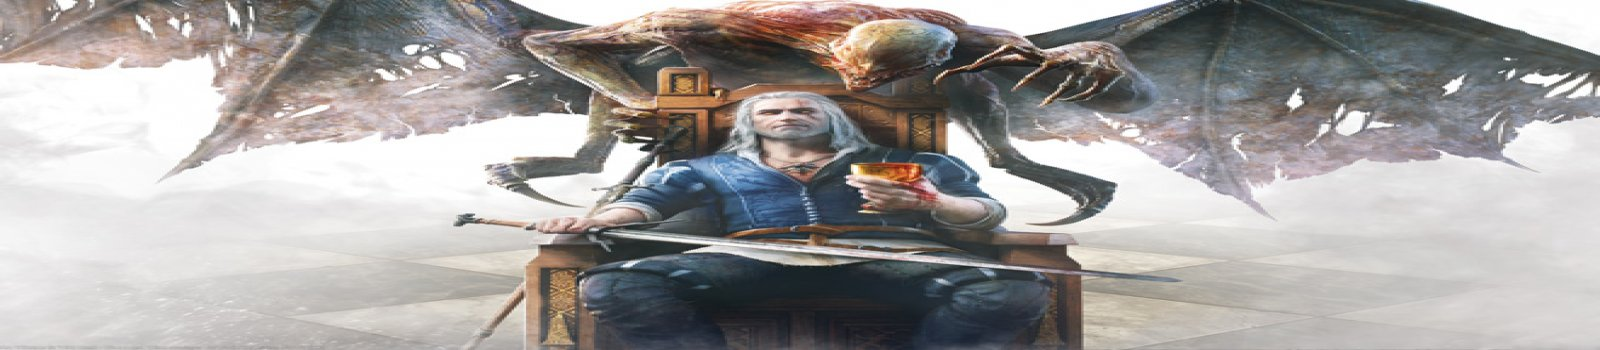 Witcher 3: Wild Hunt – Blood and Wine incelemesi